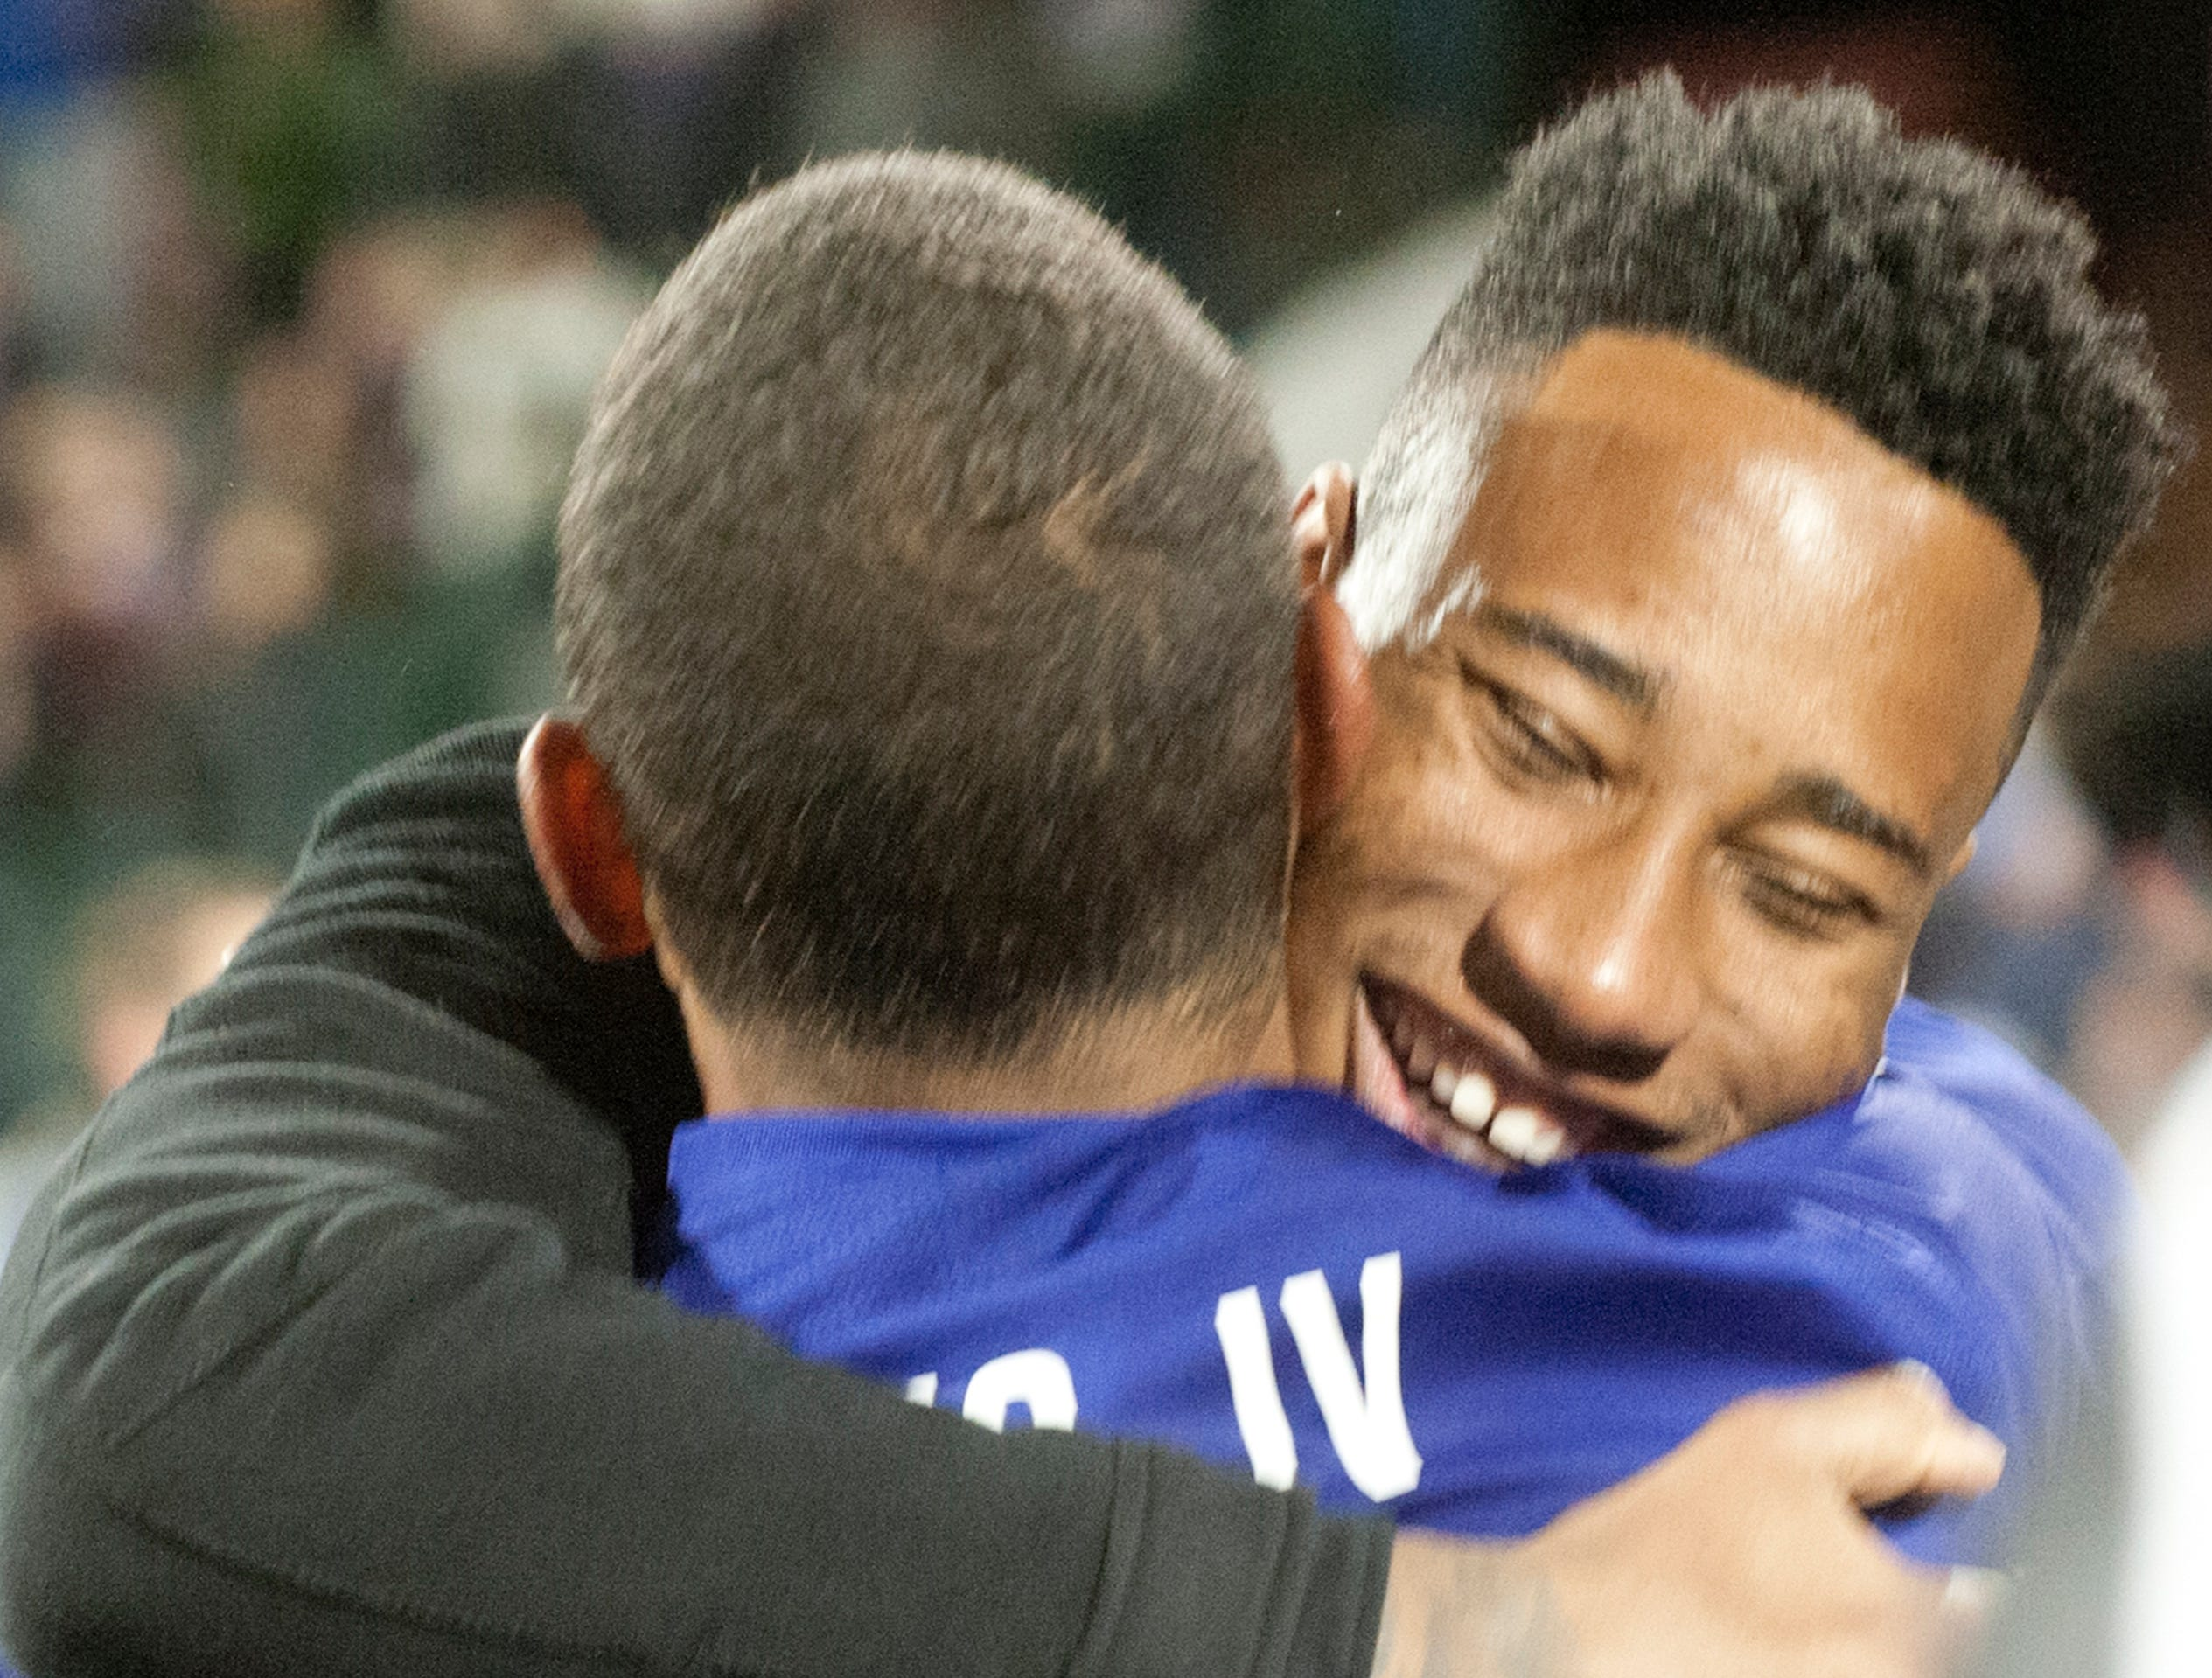 Former Louisville City FC player Mark-Anthony Kaye who now plays for the Los Angeles FC hugs his former teammate, Louisville City midfielder George Davis IV, after Louisville defeated the Phoenix Rising FC to capture the 2018 USL Cup.November 08, 2018